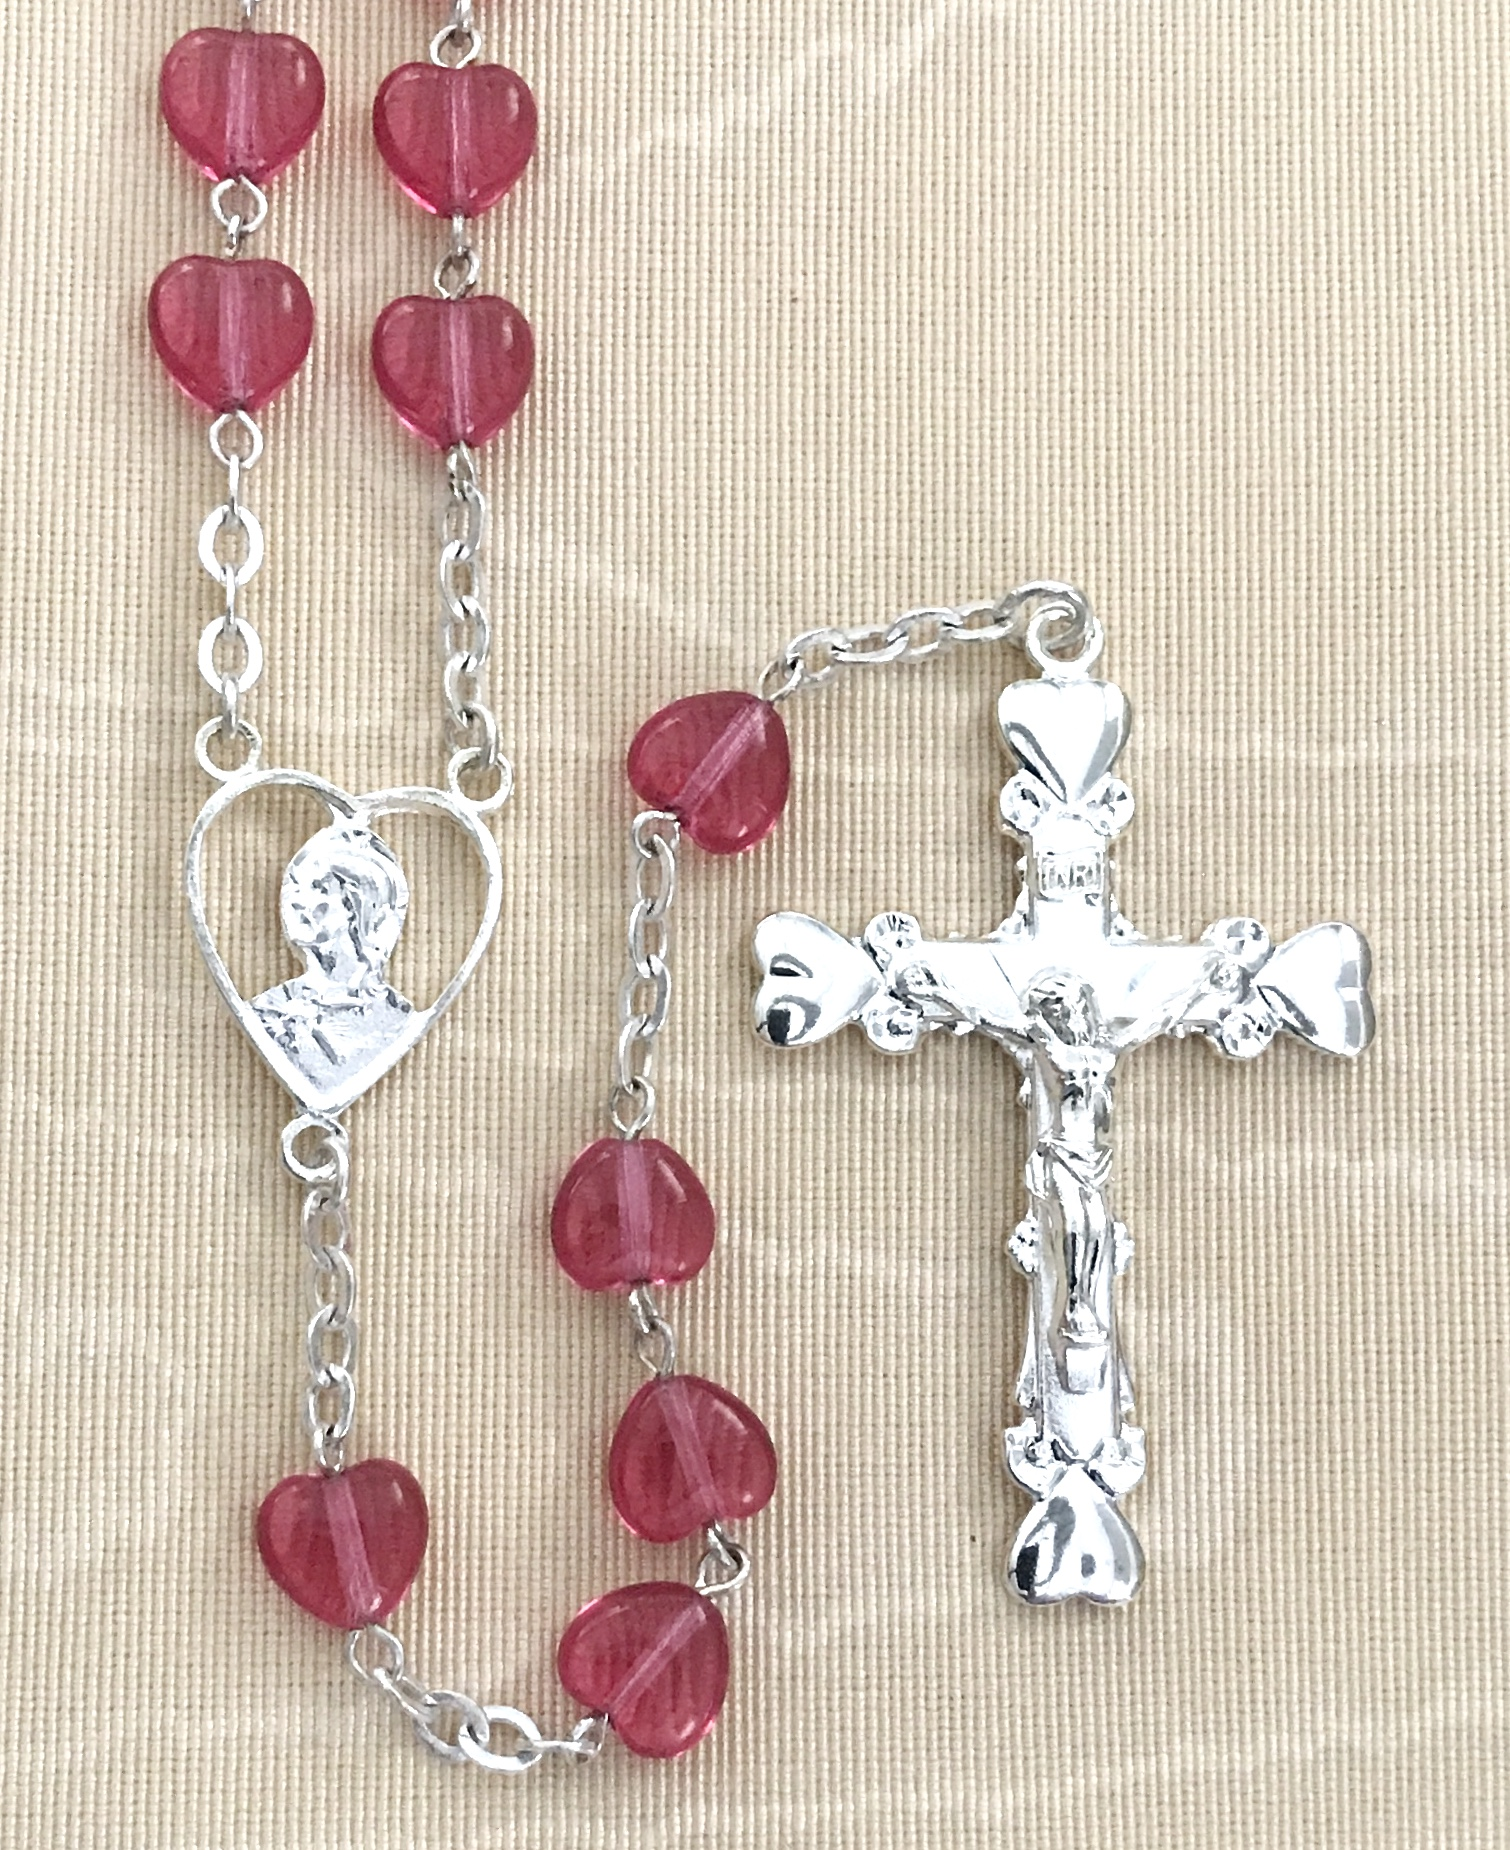 8x8mm ROSE HEART SHAPE WITH PEARL OUR FATHER BEADS STERLING SILVER PLATED ROSARY GIFT BOXED